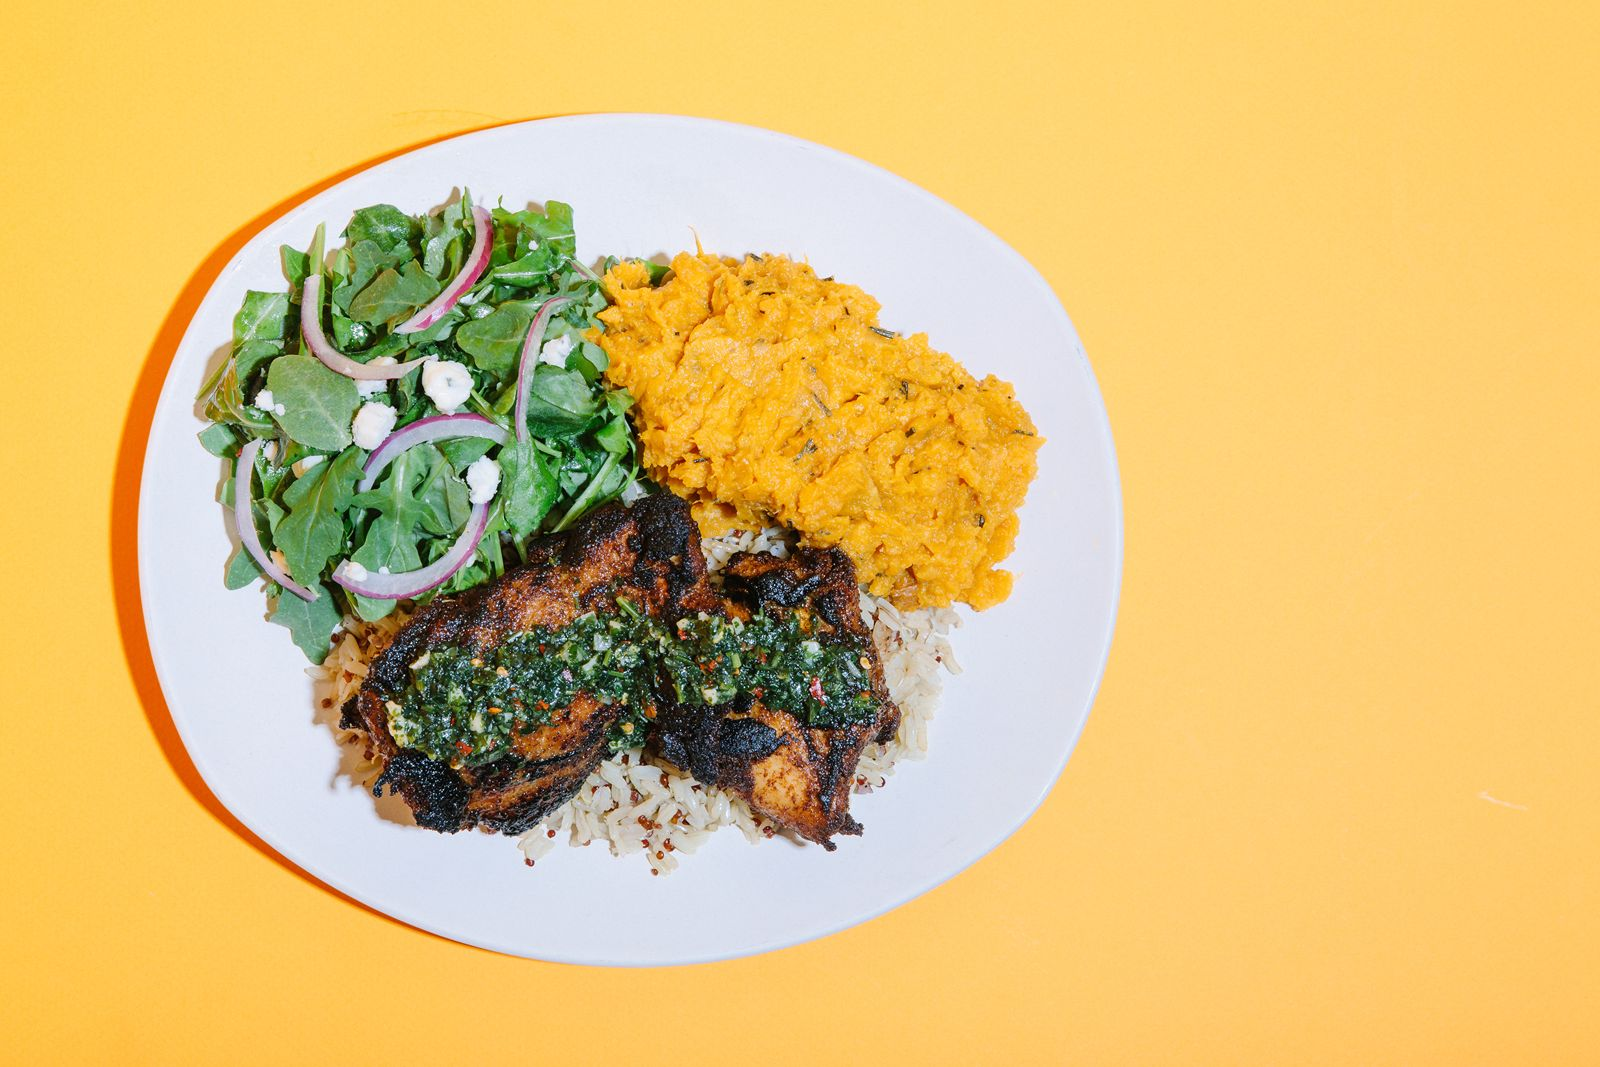 Modern Market Eatery Welcomes Blackened Chicken Thighs on New Fall Menu